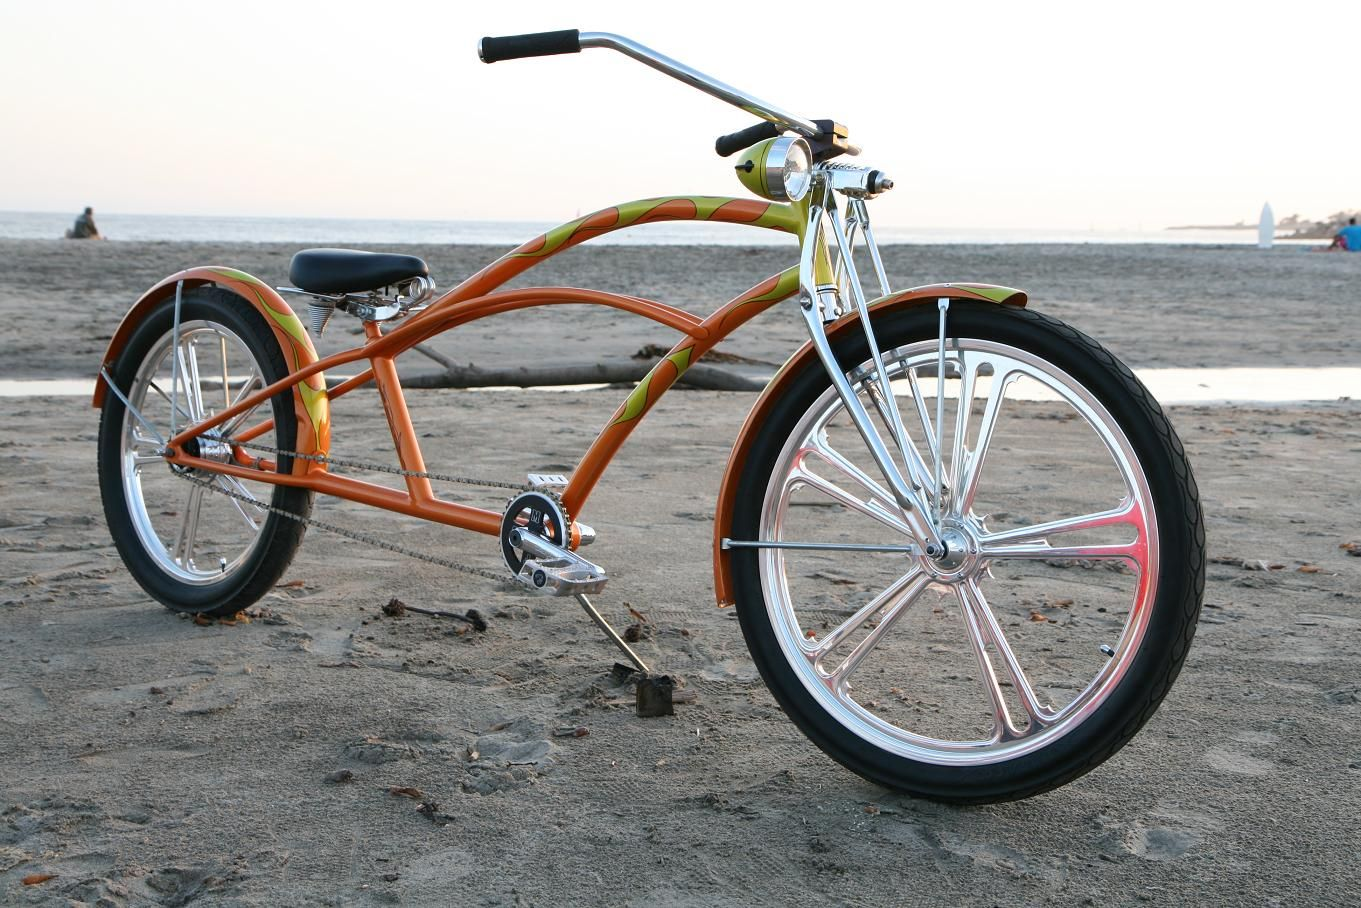 Stretched beach cruiser after a long day at the sea otter classic we stopped